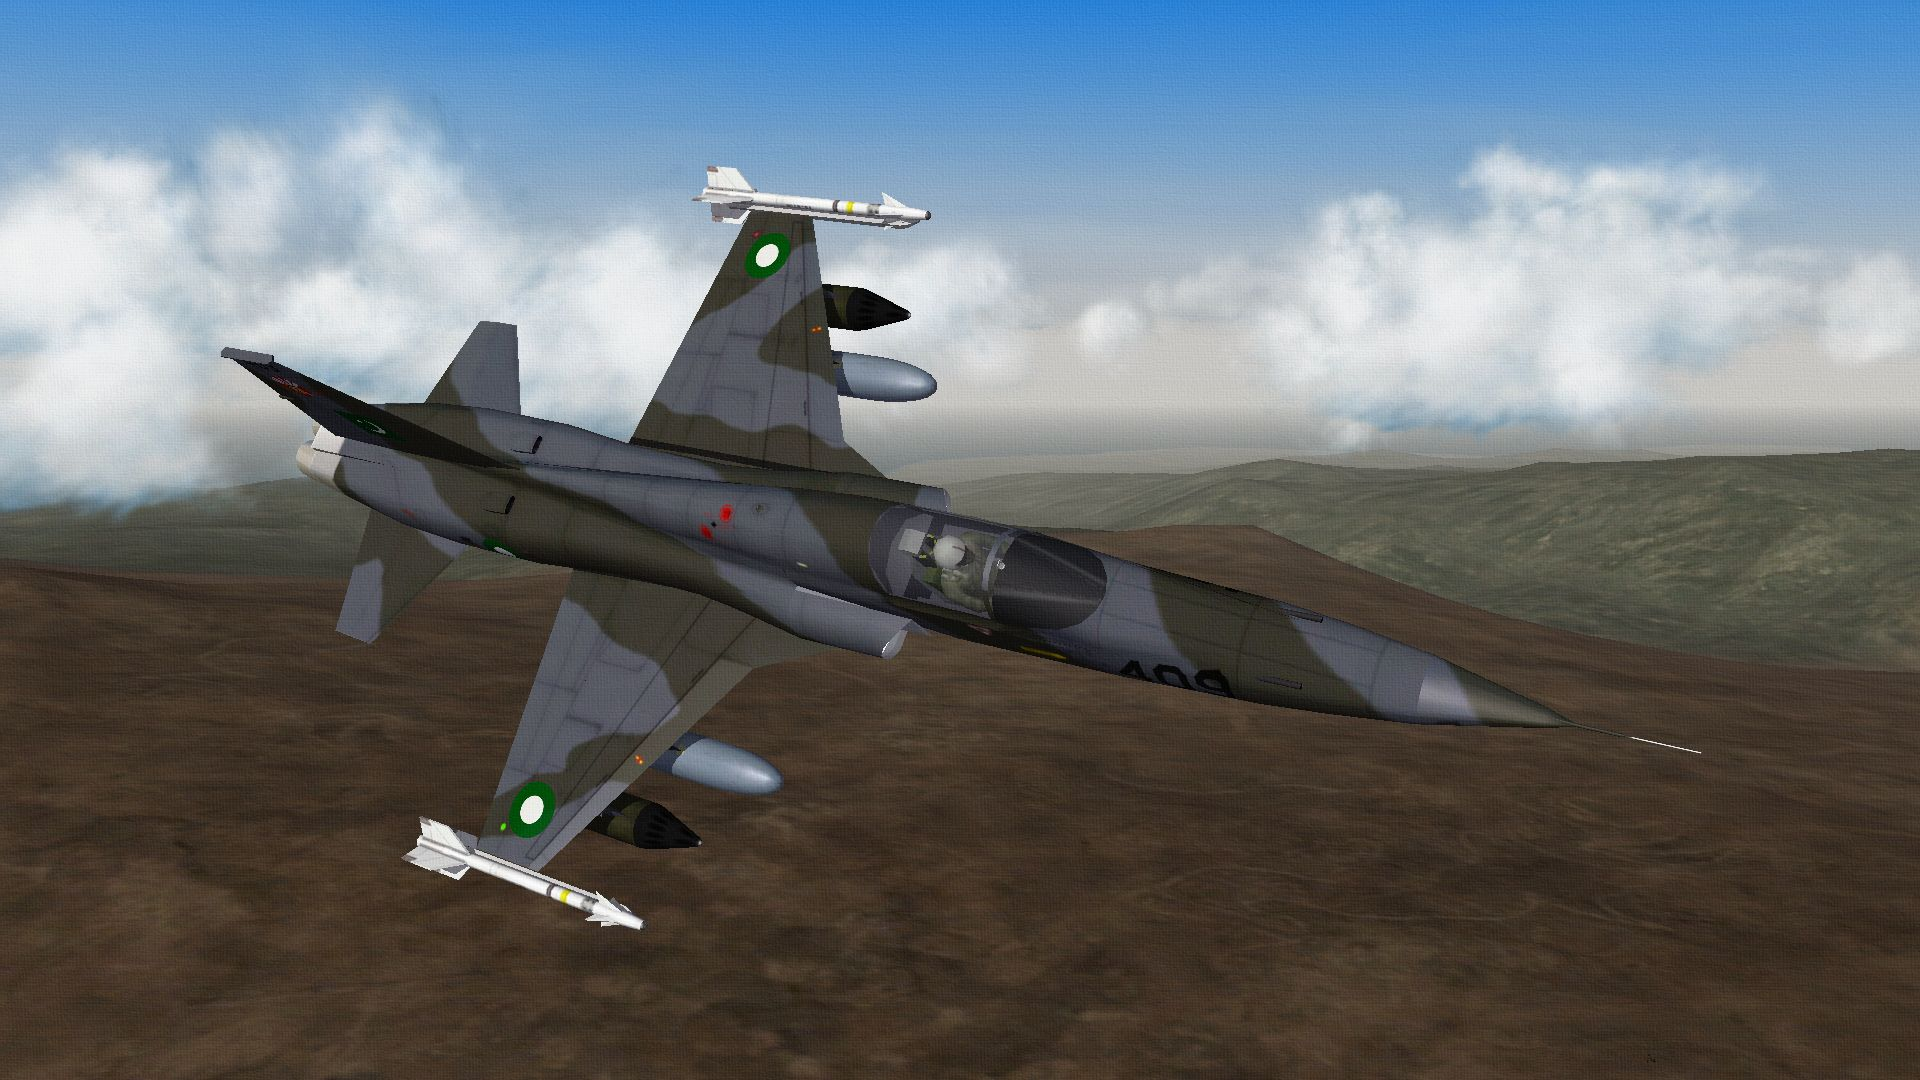 PAF%20F-5A%20FREEDOM%20FIGHTER.05_zps4qf